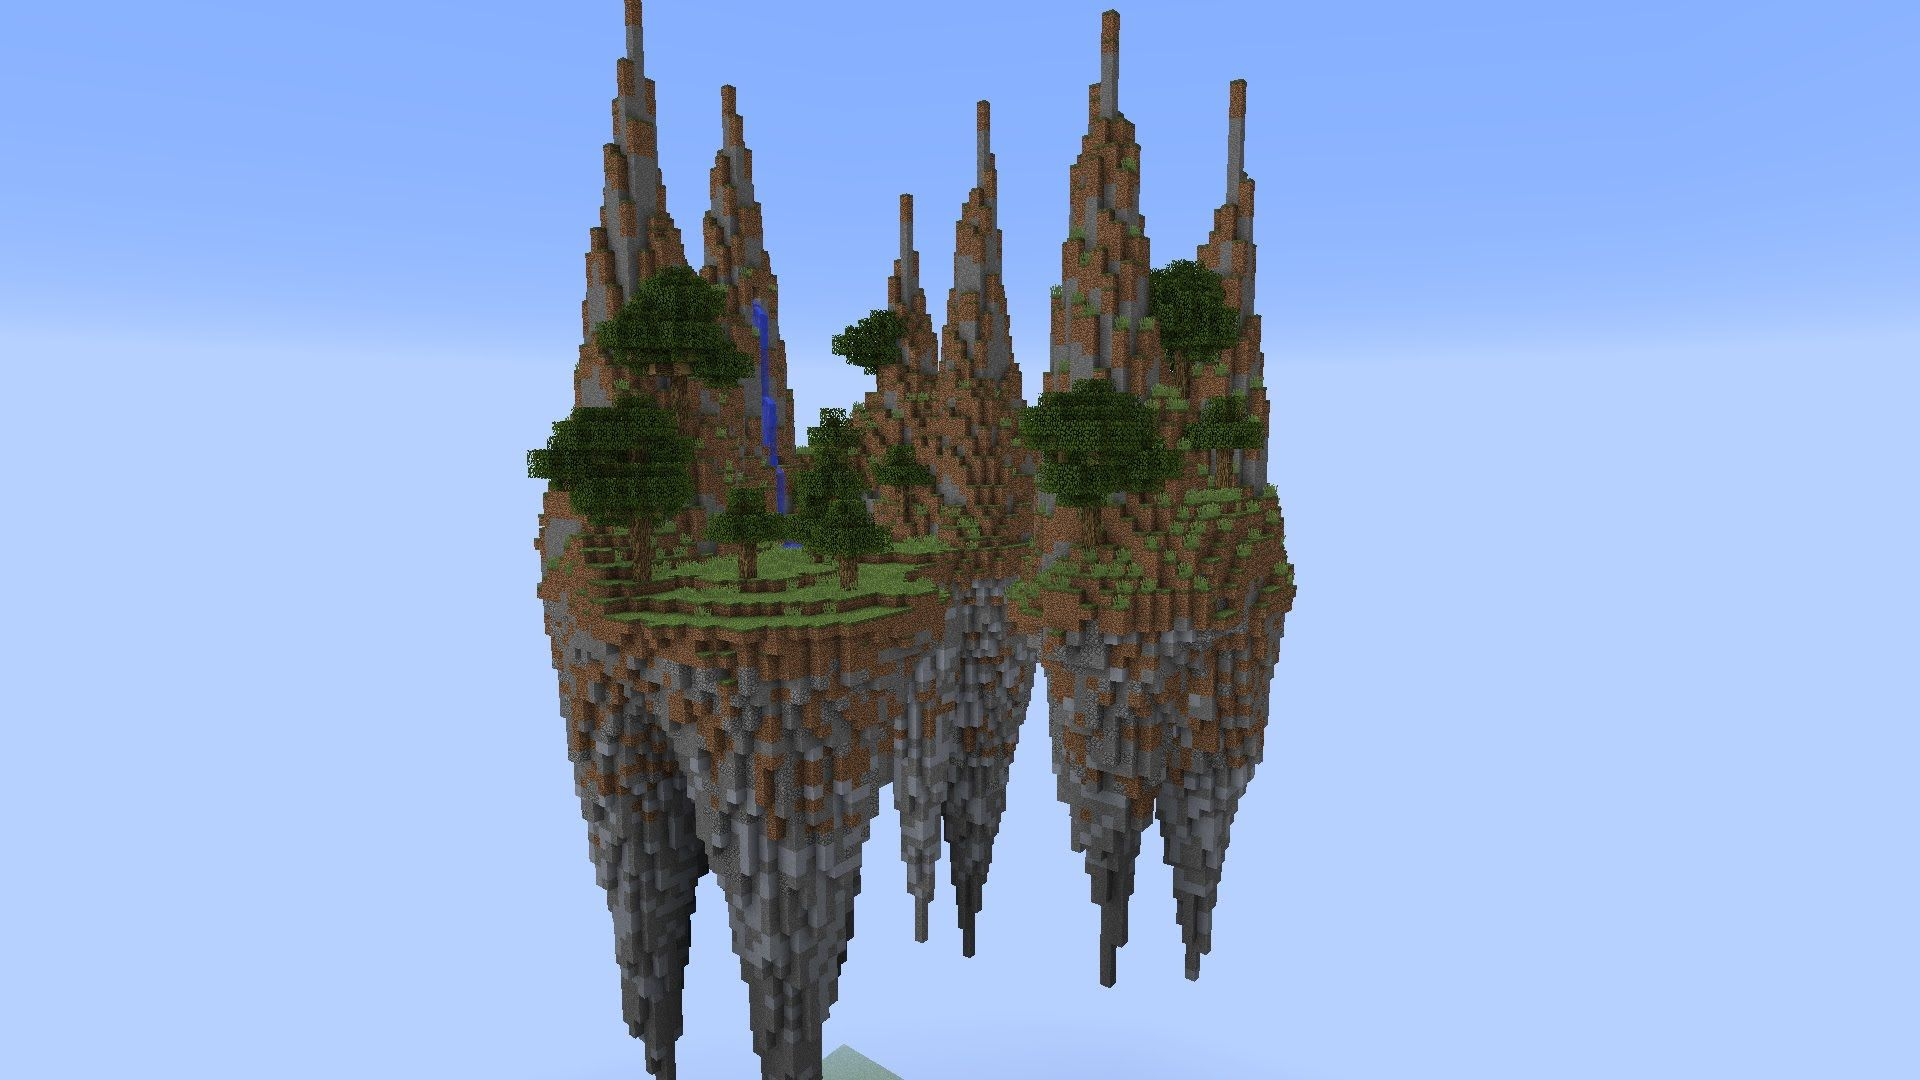 Building With Grian - Floating Islands! | Floating island ...